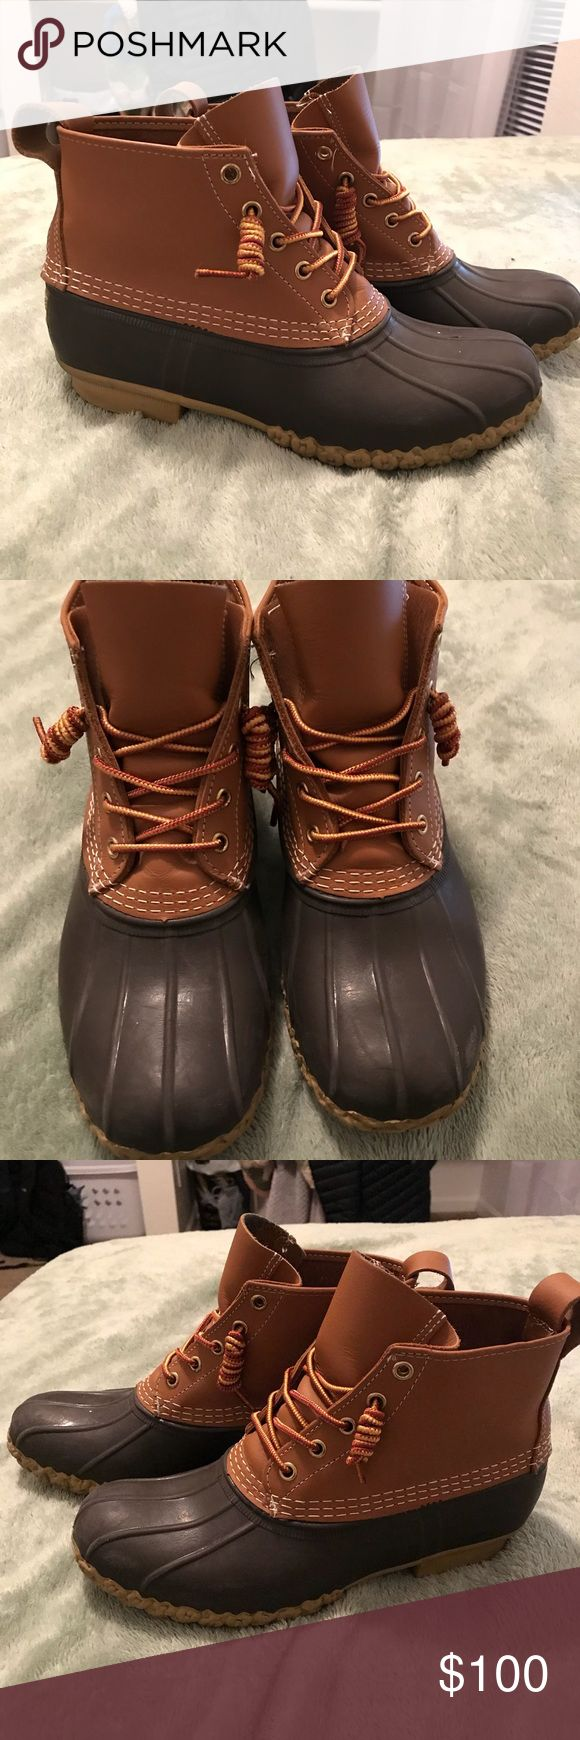 """L.L. Bean duck boots 6"""" L.L. Bean bean boots/ duck boots. Worn very few times. A few frayed stitches (pictured) and some slight staining from denim on the inside of the tongue (pictured). So nice and comfy, and very warm! Just not my style any more. I can't find a size on them and I don't remember what size I got since I got them a few years ago, but I typically wear a 10 and I heard to size down, so I'm going to assume a women's 9-10. L.L. Bean Shoes Winter & Rain Boots"""